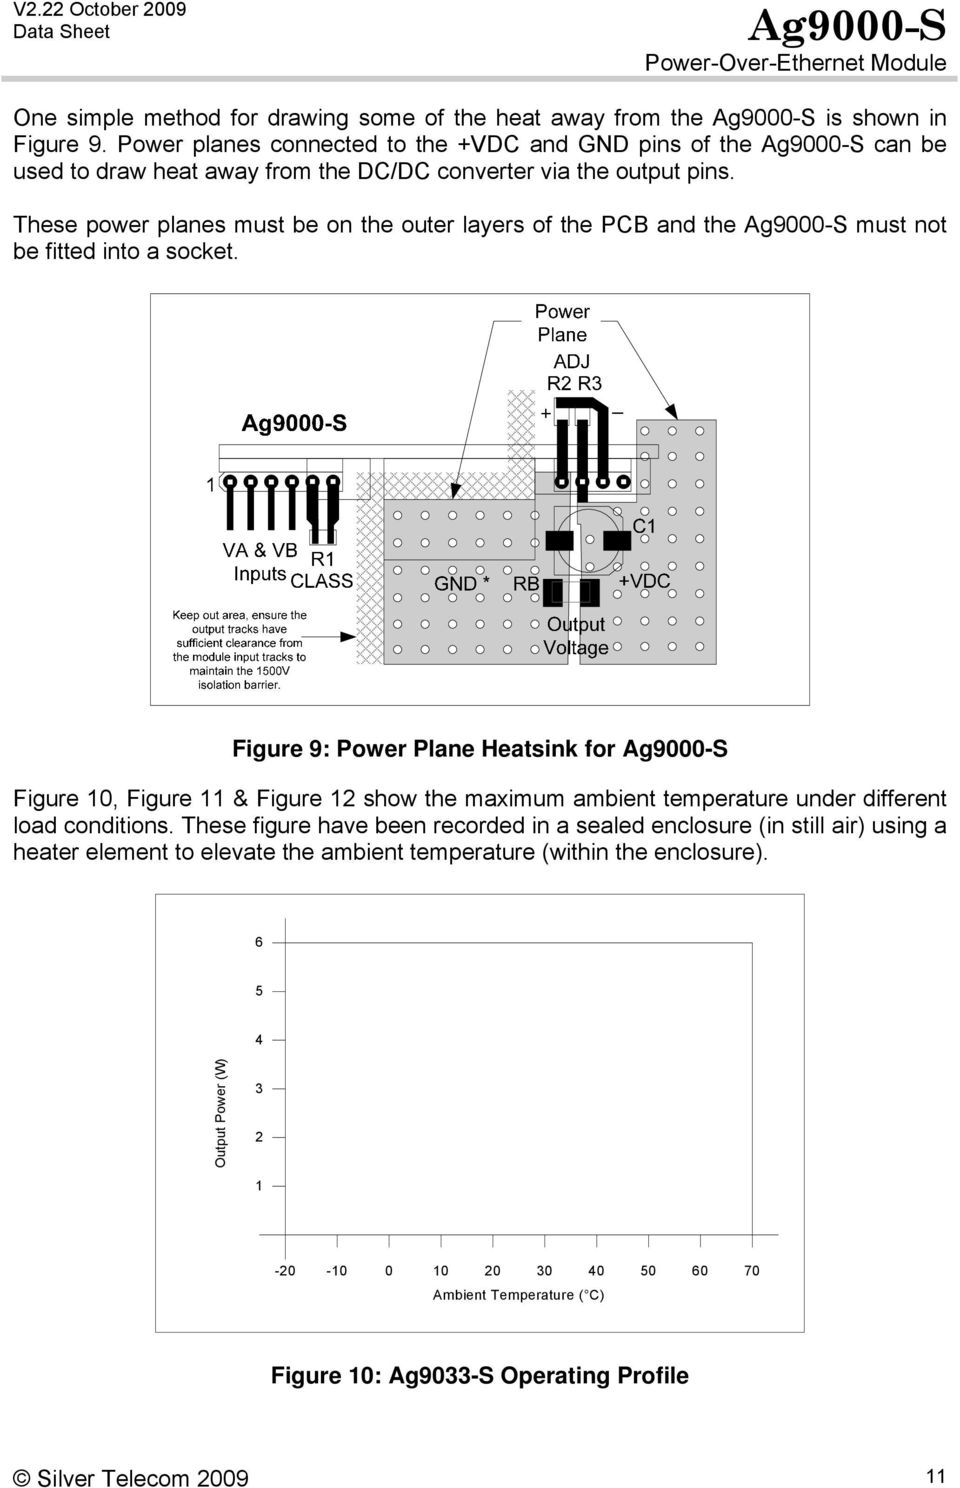 Arduino Ethernet Shield R3 Back Pdf Poweroverethernet Poe On Industrialbased Networking Fig 2 These Power Planes Must Be The Outer Layers Of Pcb And Not